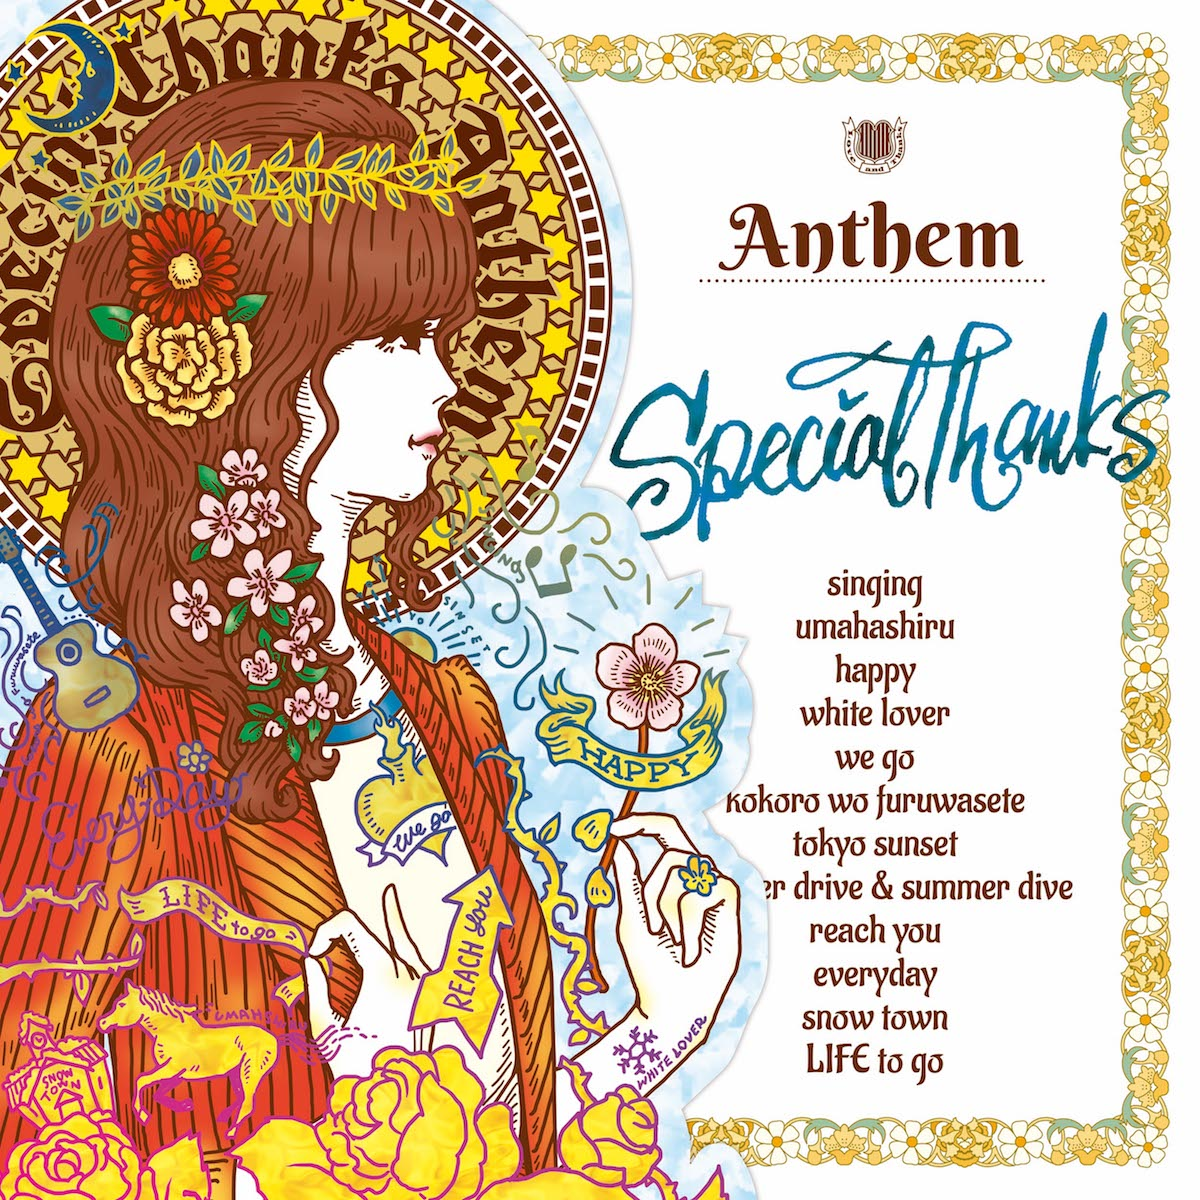 Anthem / SpecialThanks